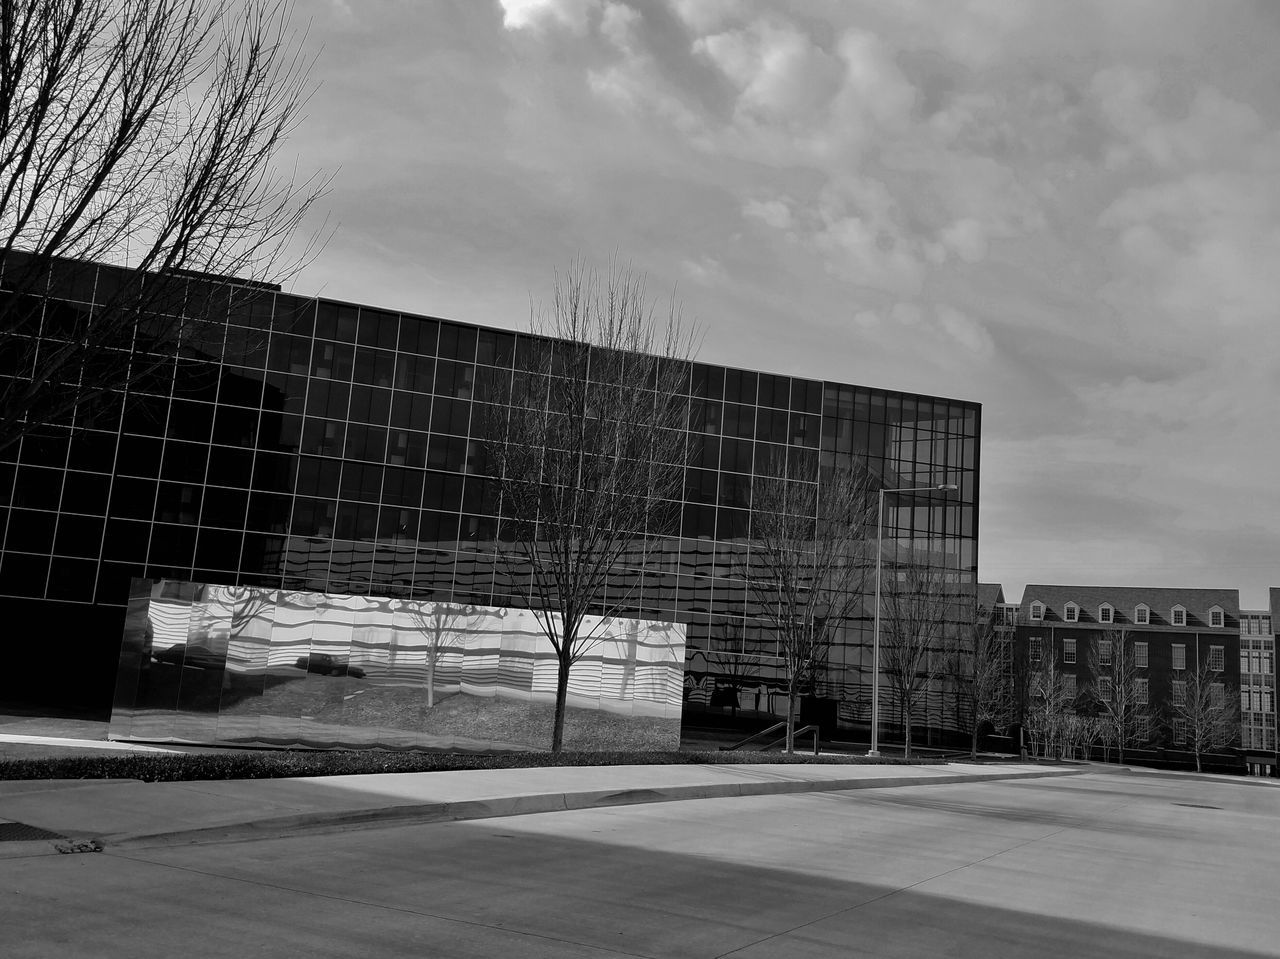 B&W Architecture Architecture Black And White Collection  Building Exterior Built Structure Cityscape Cloudy Skies Day Glass Building Modern MUR B&W No People Outdoors Reflection Sky Welcome To Black The Architect - 2017 EyeEm Awards